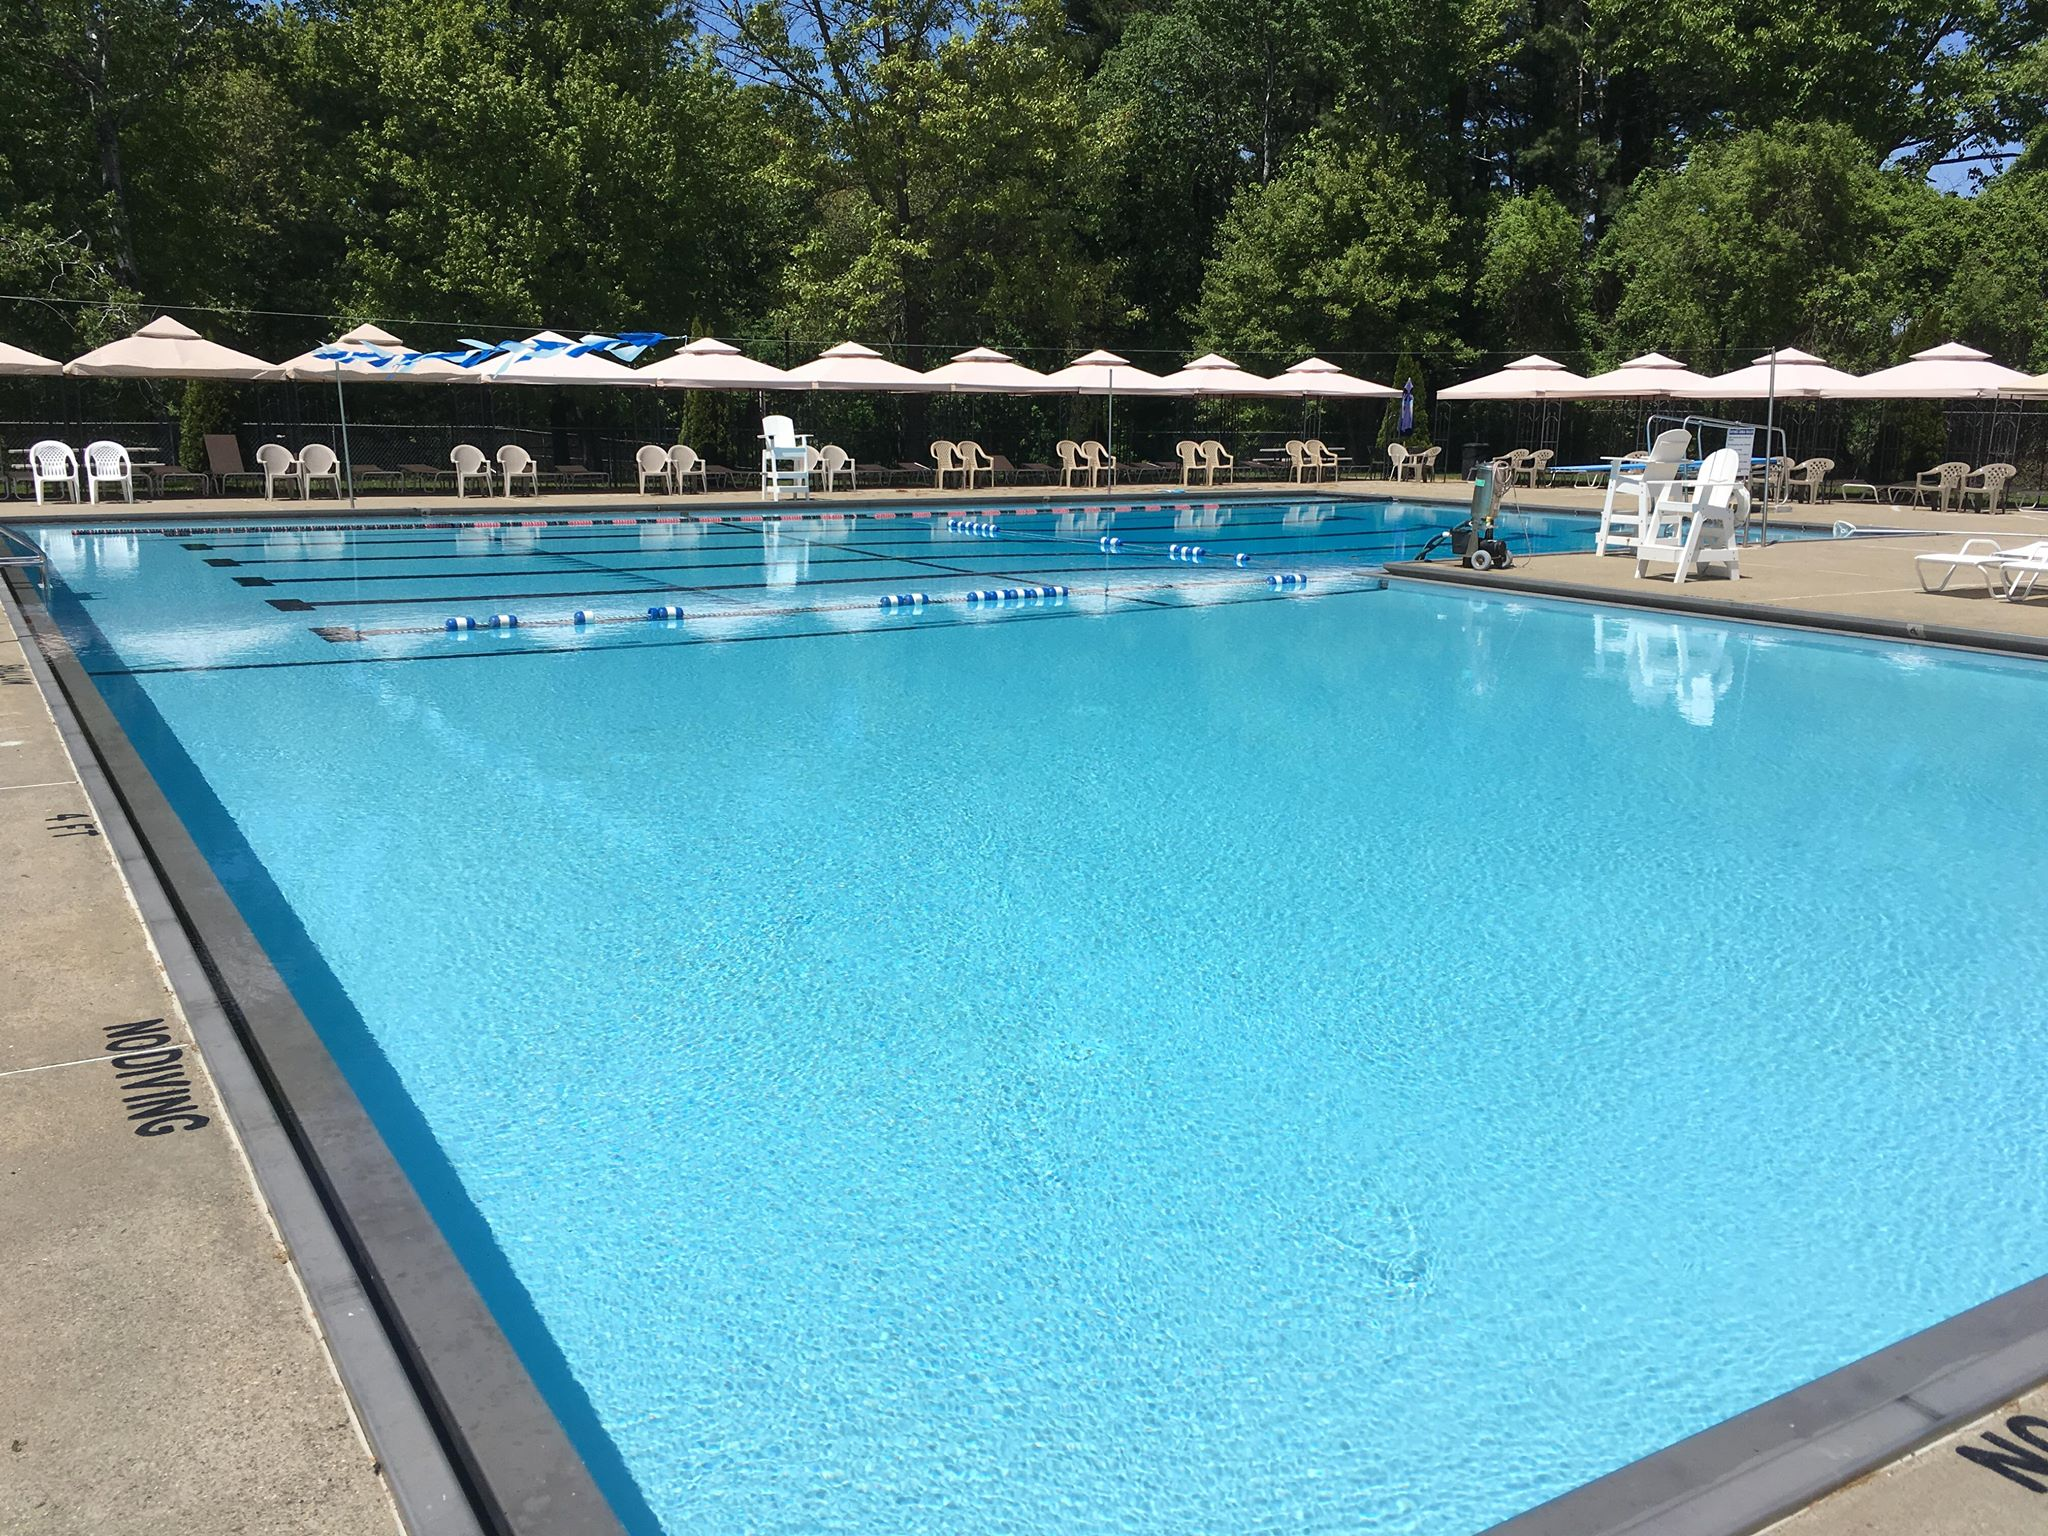 Inquire about pool membership today!